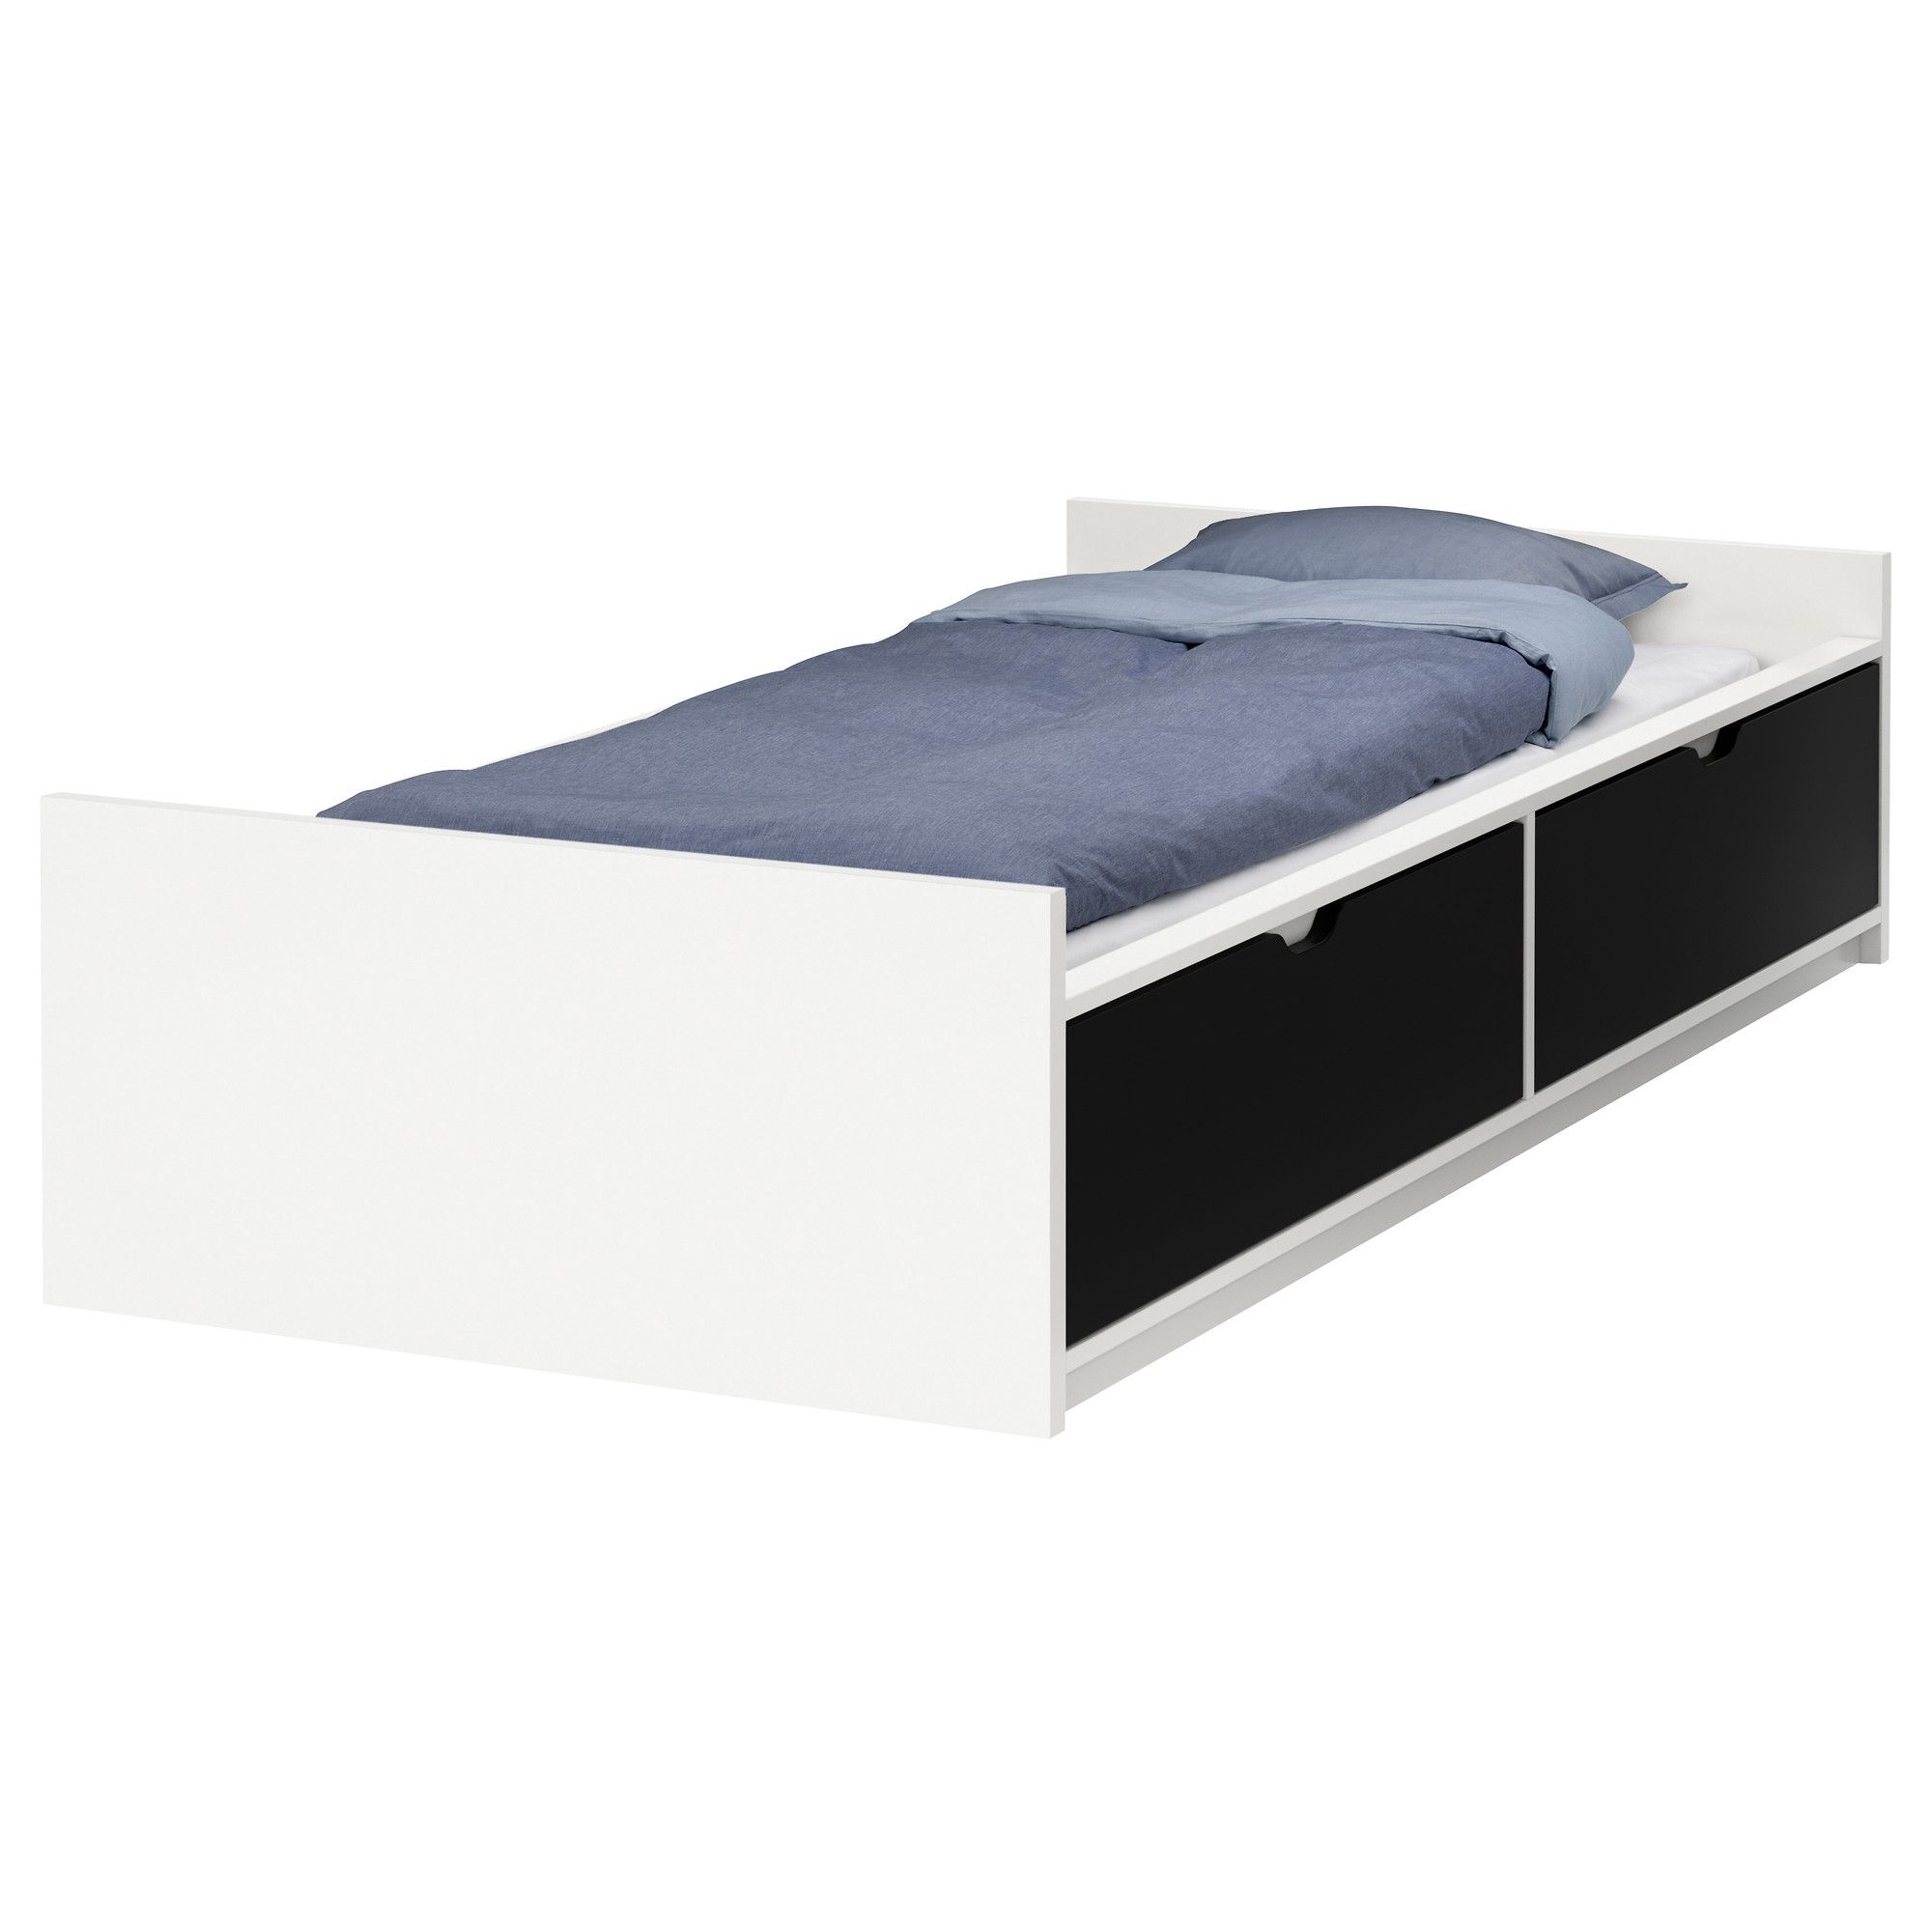 Ikea Us Furniture And Home Furnishings Twin Bed With Drawers Bed Frame With Drawers Bed Frame With Storage